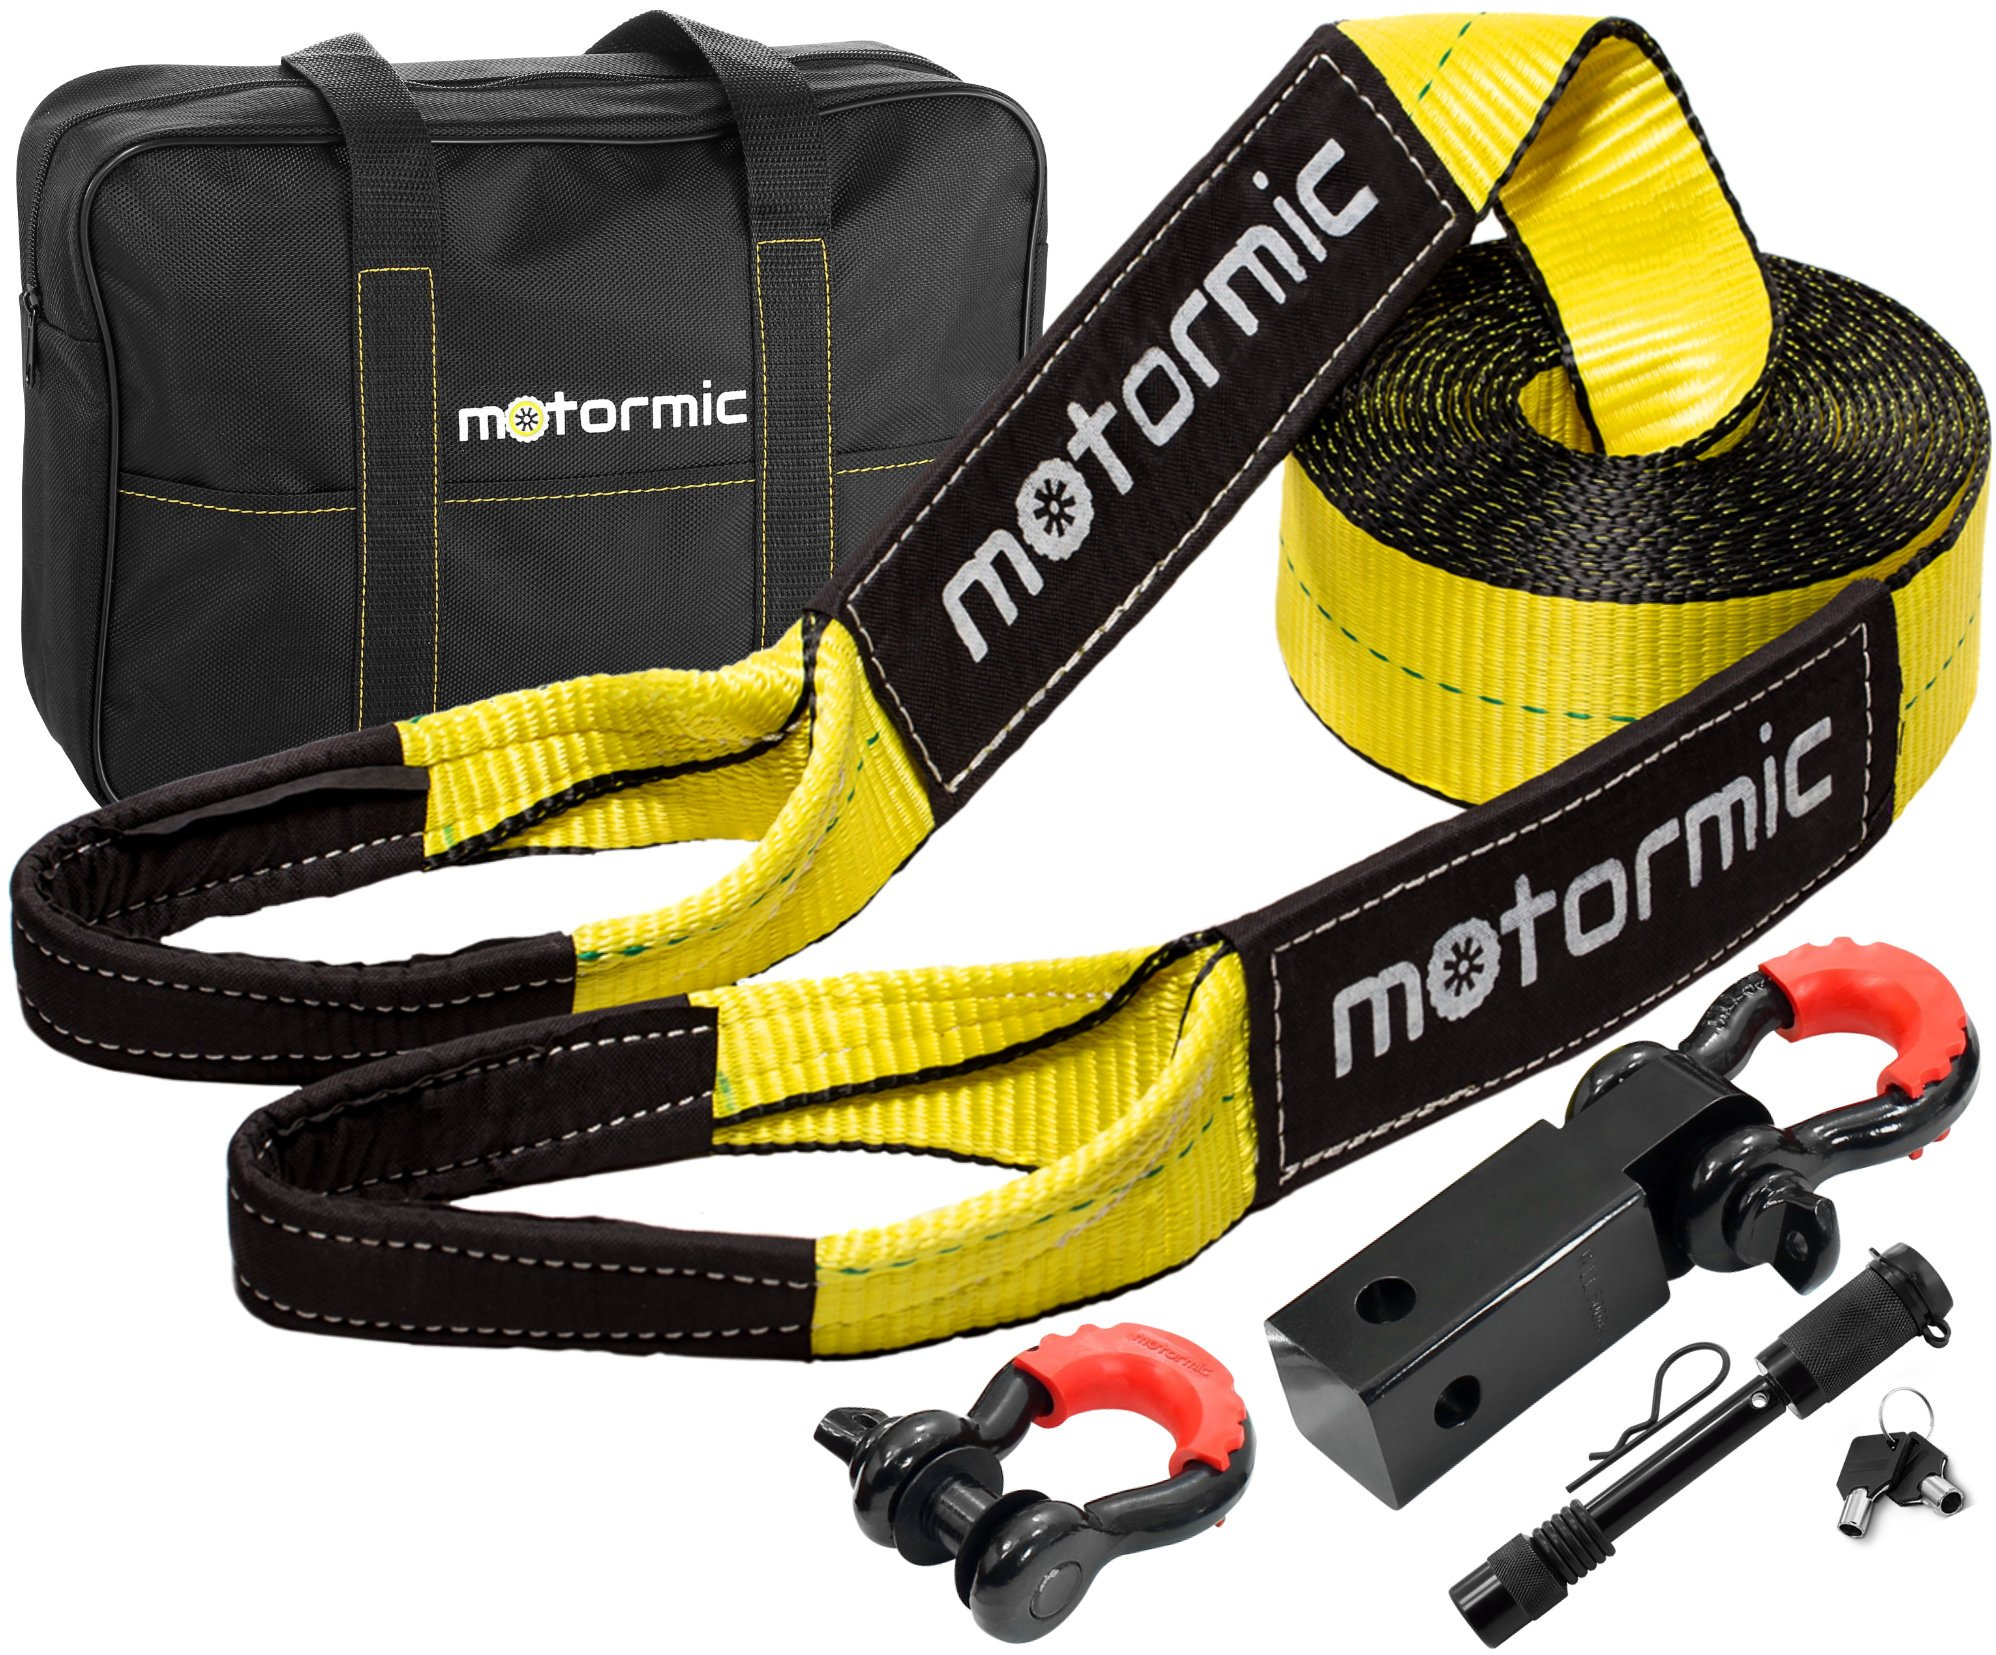 Motormic Tow Strap Heavy Duty Recovery Gear - Complete Recovery Strap Set with 3''X30' (30k lbs.) Tow Rope + 2'' Shackle Hitch Receiver + 5/8 Pin Lock + 3/4 D Ring Shackles + Bag - off road recovery kit